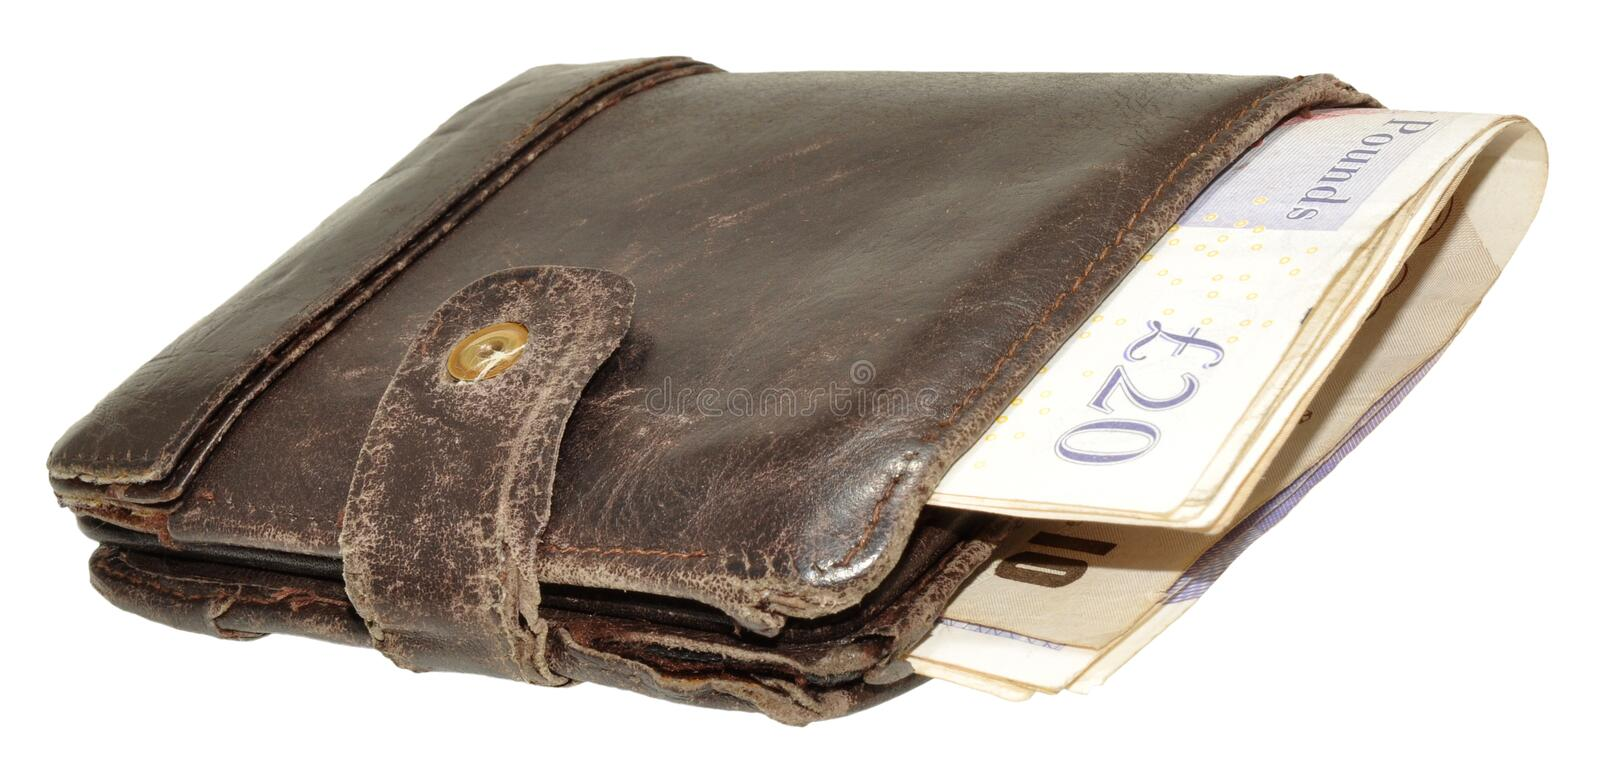 Old Leather Wallet And Bank Notes. An old worn out leather wallet and English bank notes, isolated on a white background royalty free stock photo